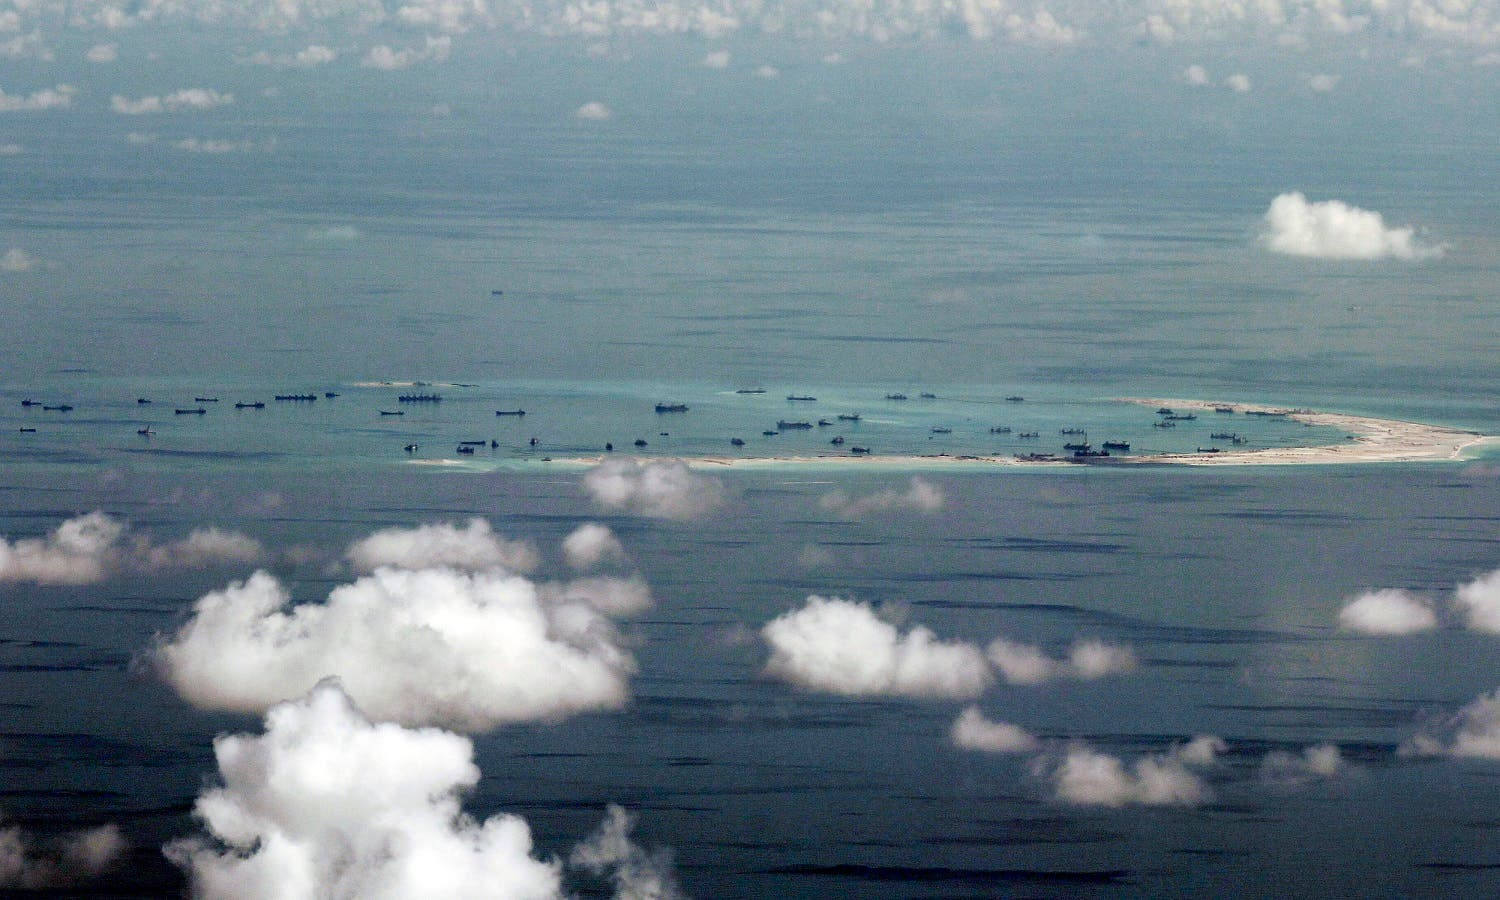 land reclamation of Mischief Reef in the Spratly Islands in the South China Sea. (AP)